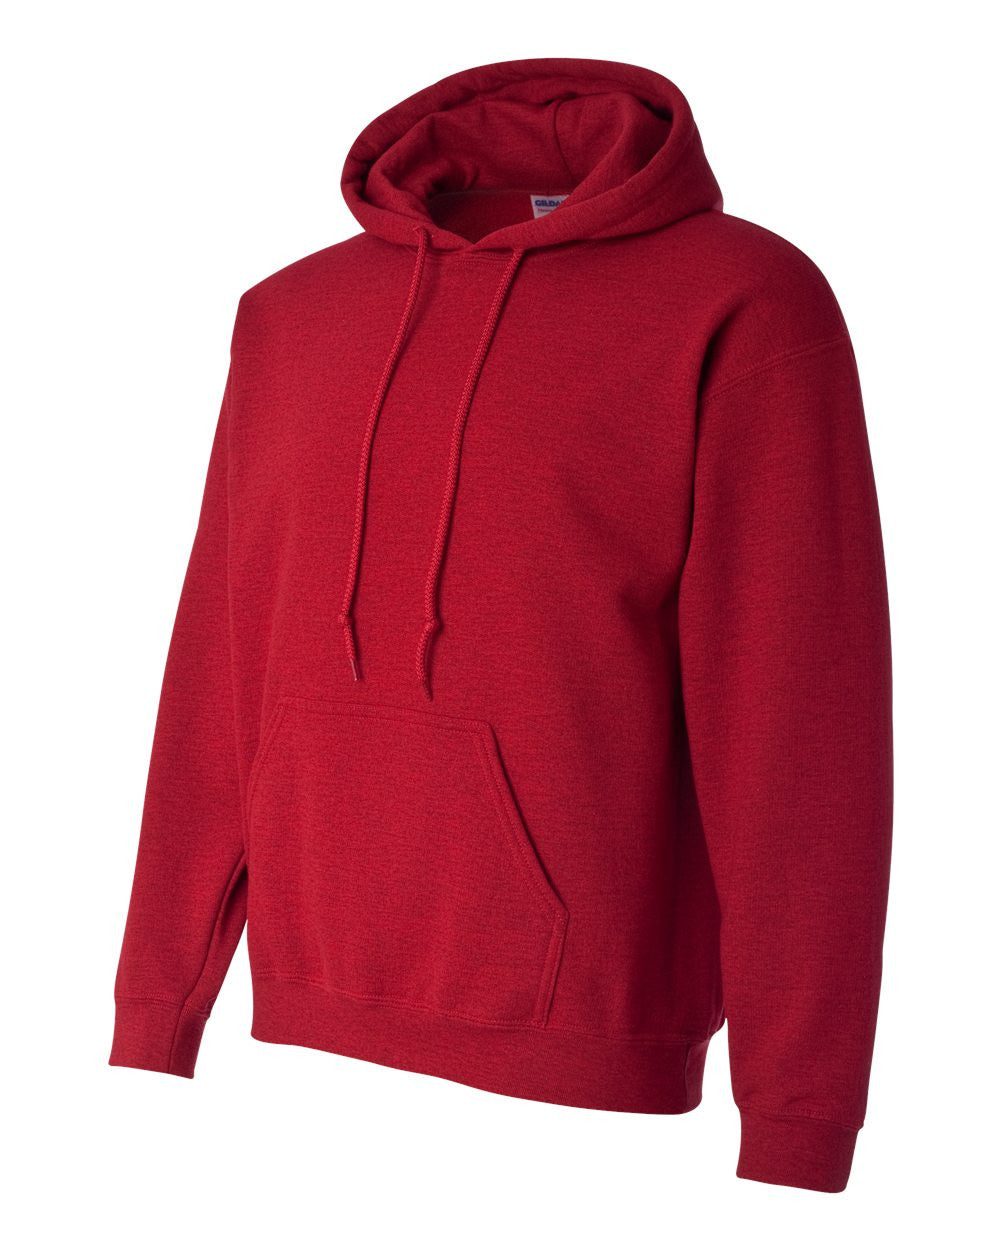 Hoodies from Gildan in over 30 colors